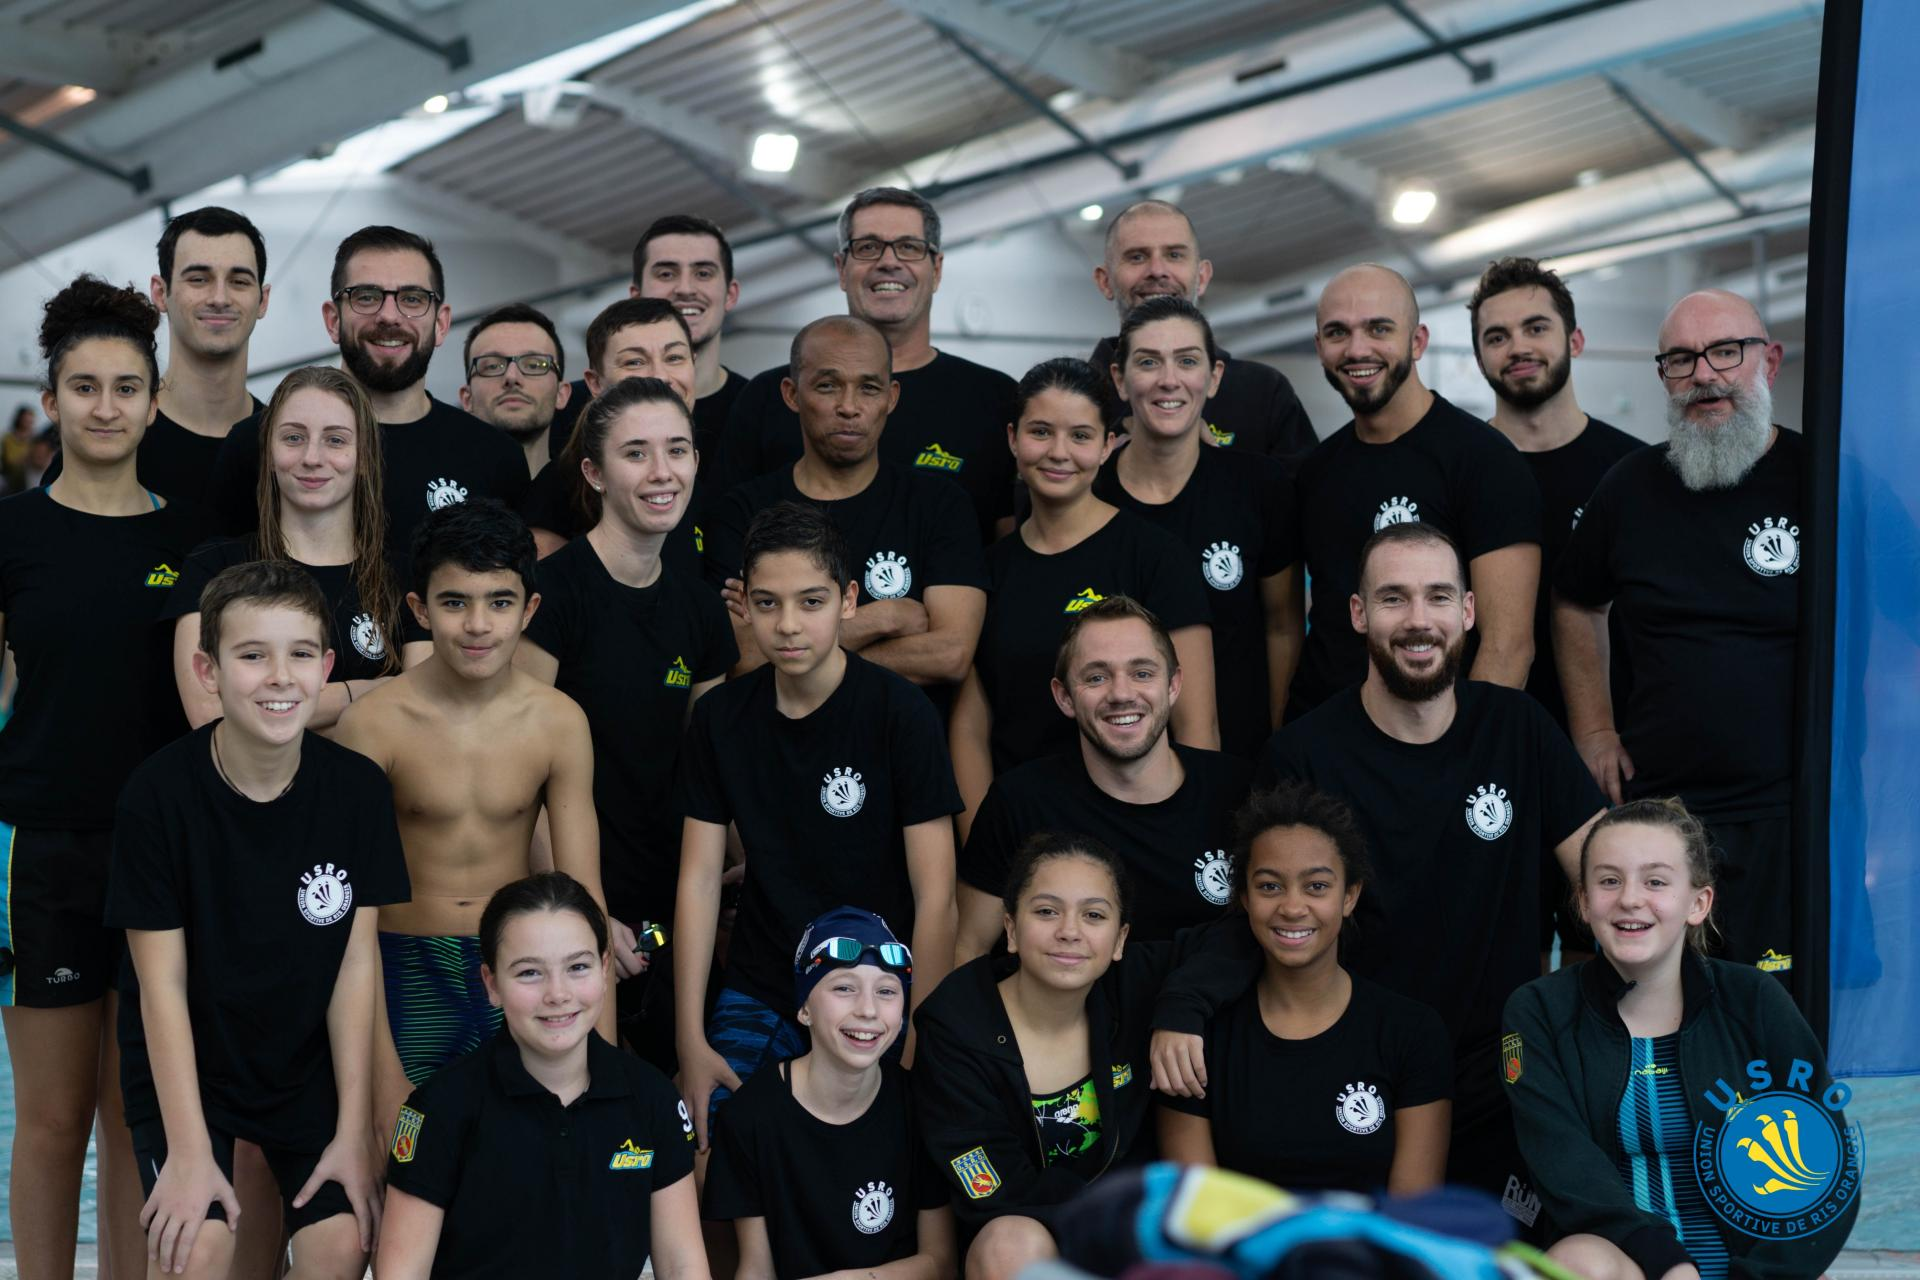 Photo groupes interclubs 2019 avec logo usro